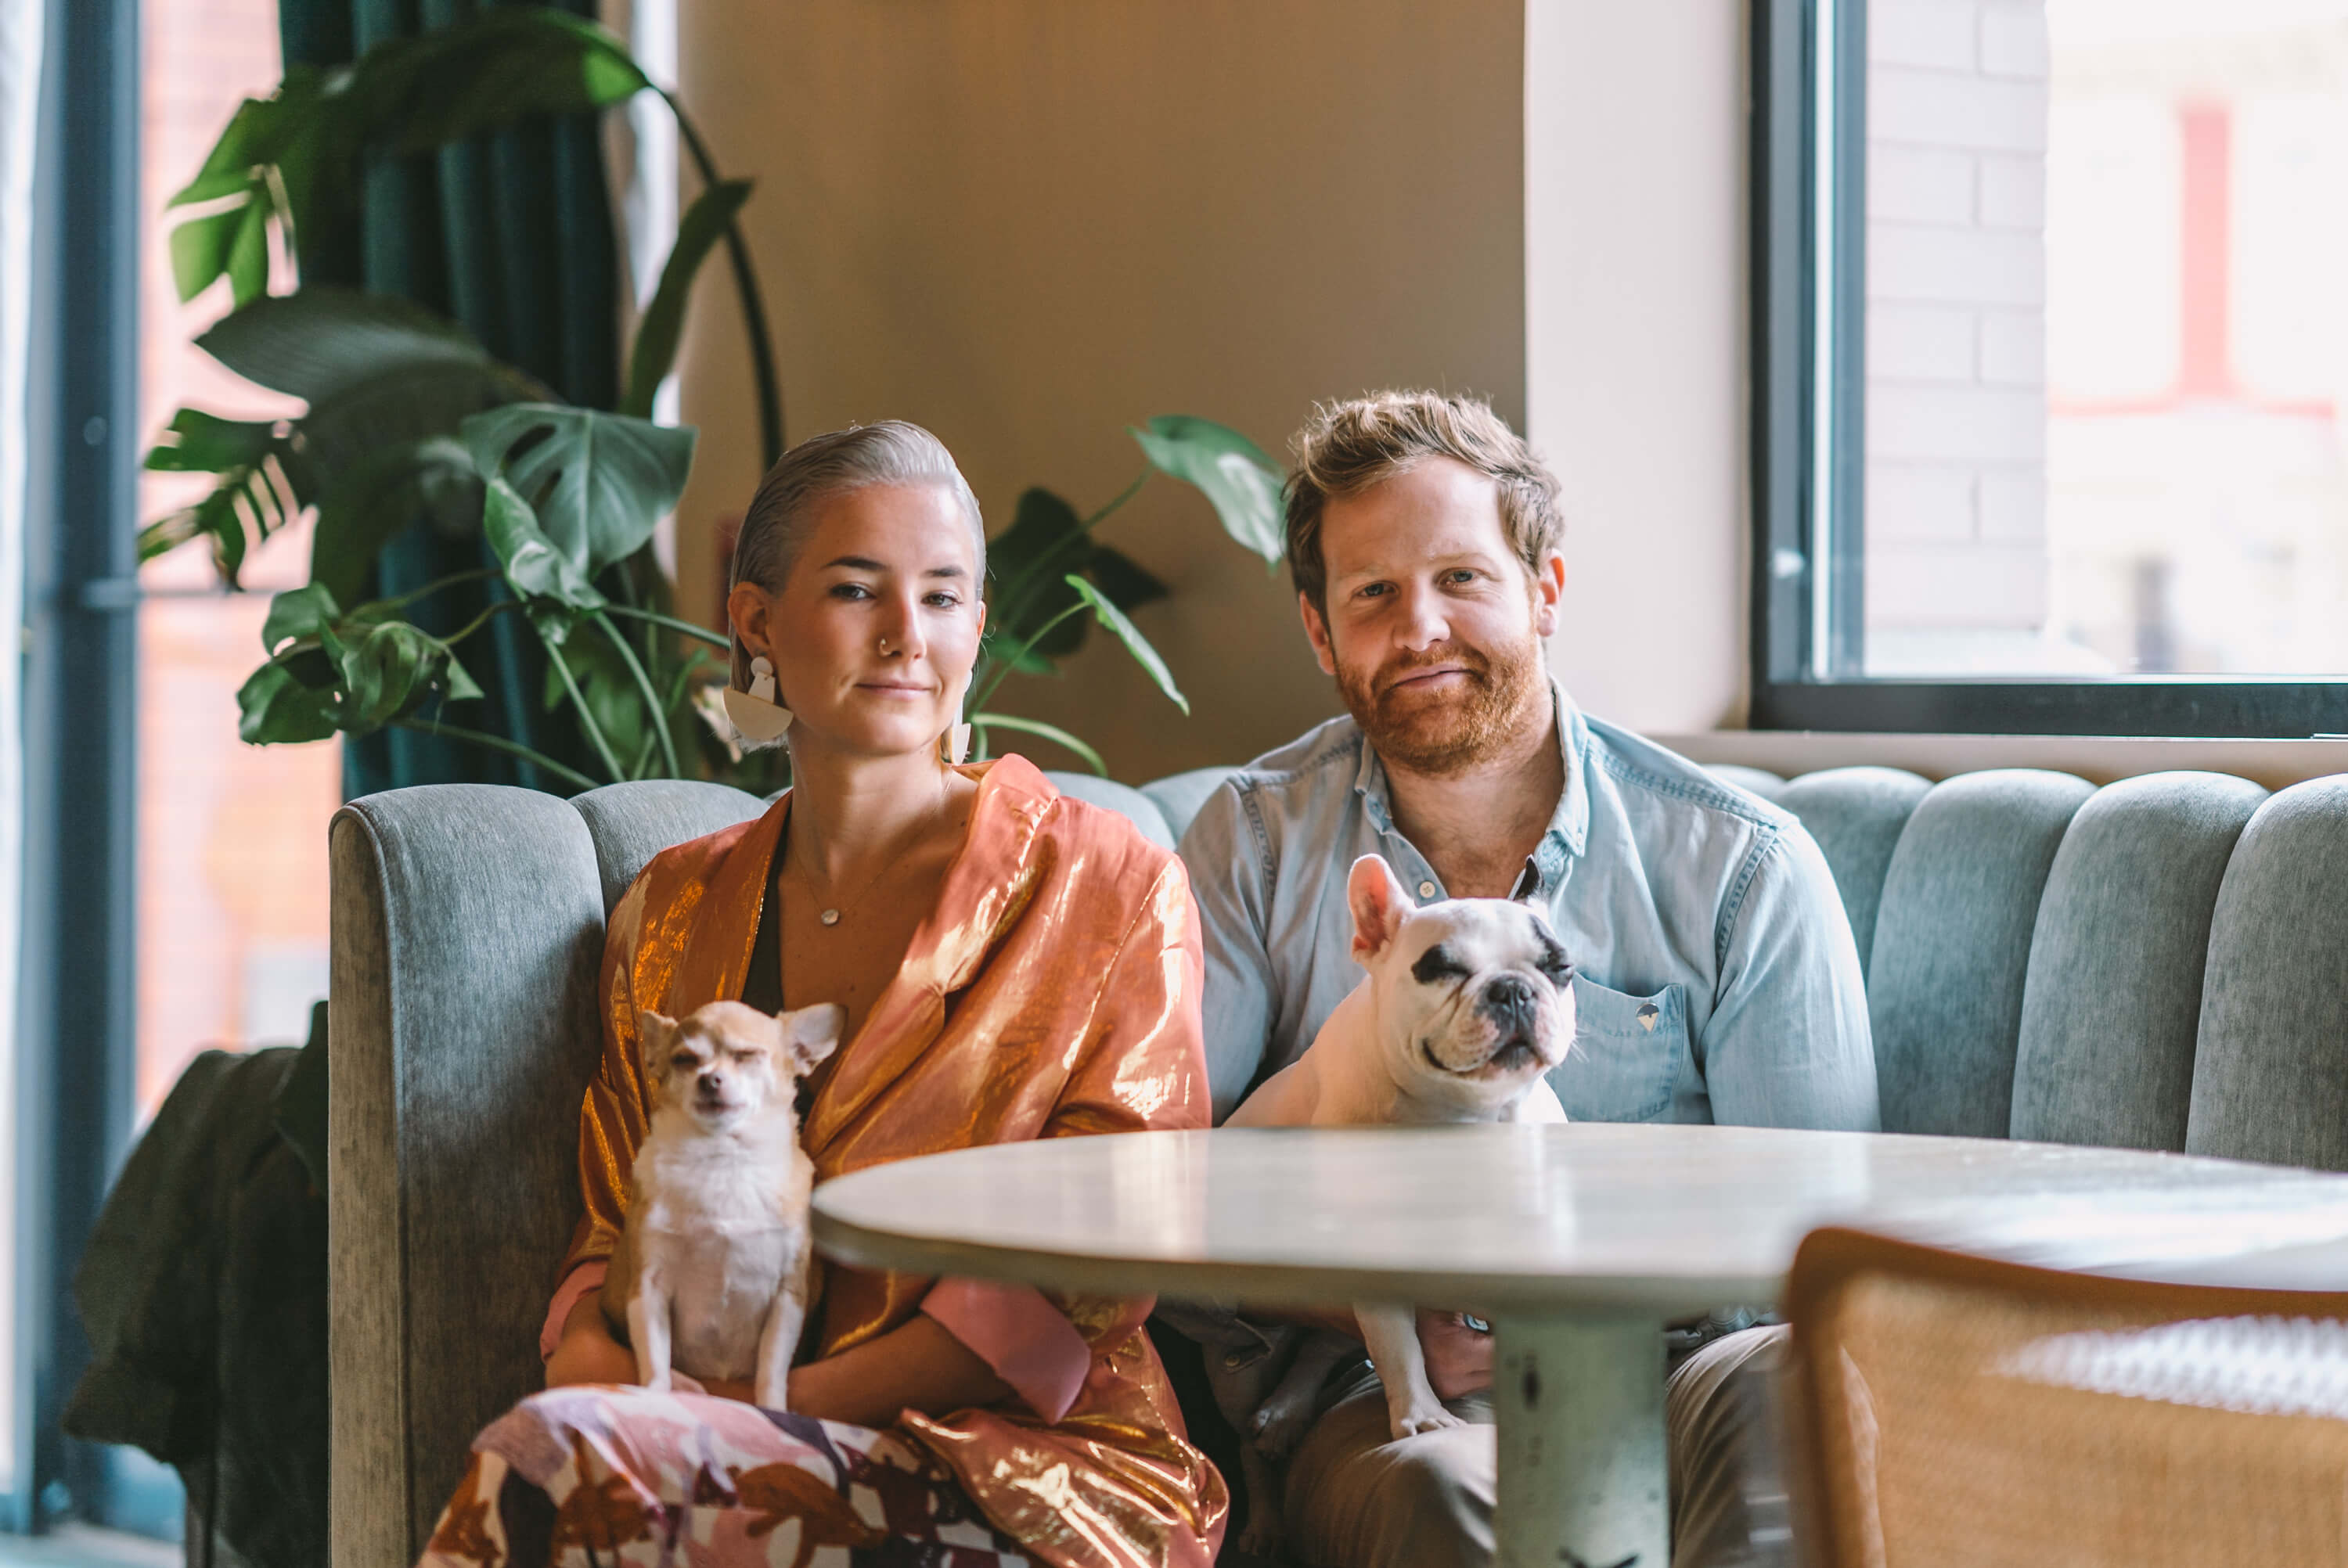 Hospitality duo Rebecca Johnson and Rowen McDermott with their dogs Frankie and Ozzie for Wellfed Creative Podcast